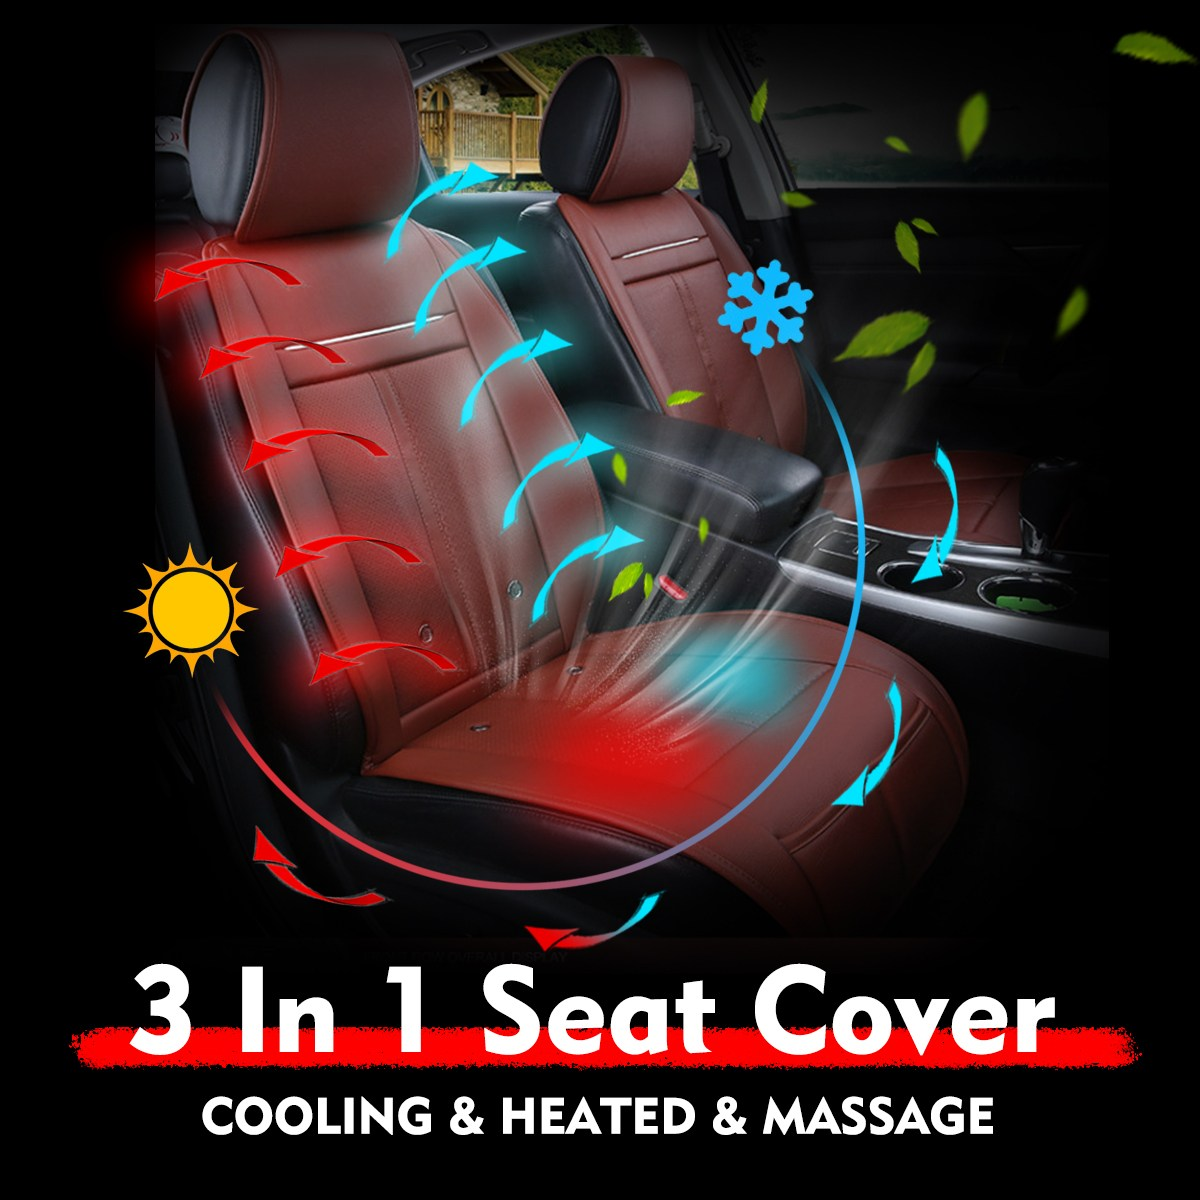 3 In 1 Car Auto Seat Cushion Pads Cooling + Heated + Massage Chair Seat Cover Cushion Universal DC 12V Electric Heated Seat Pads